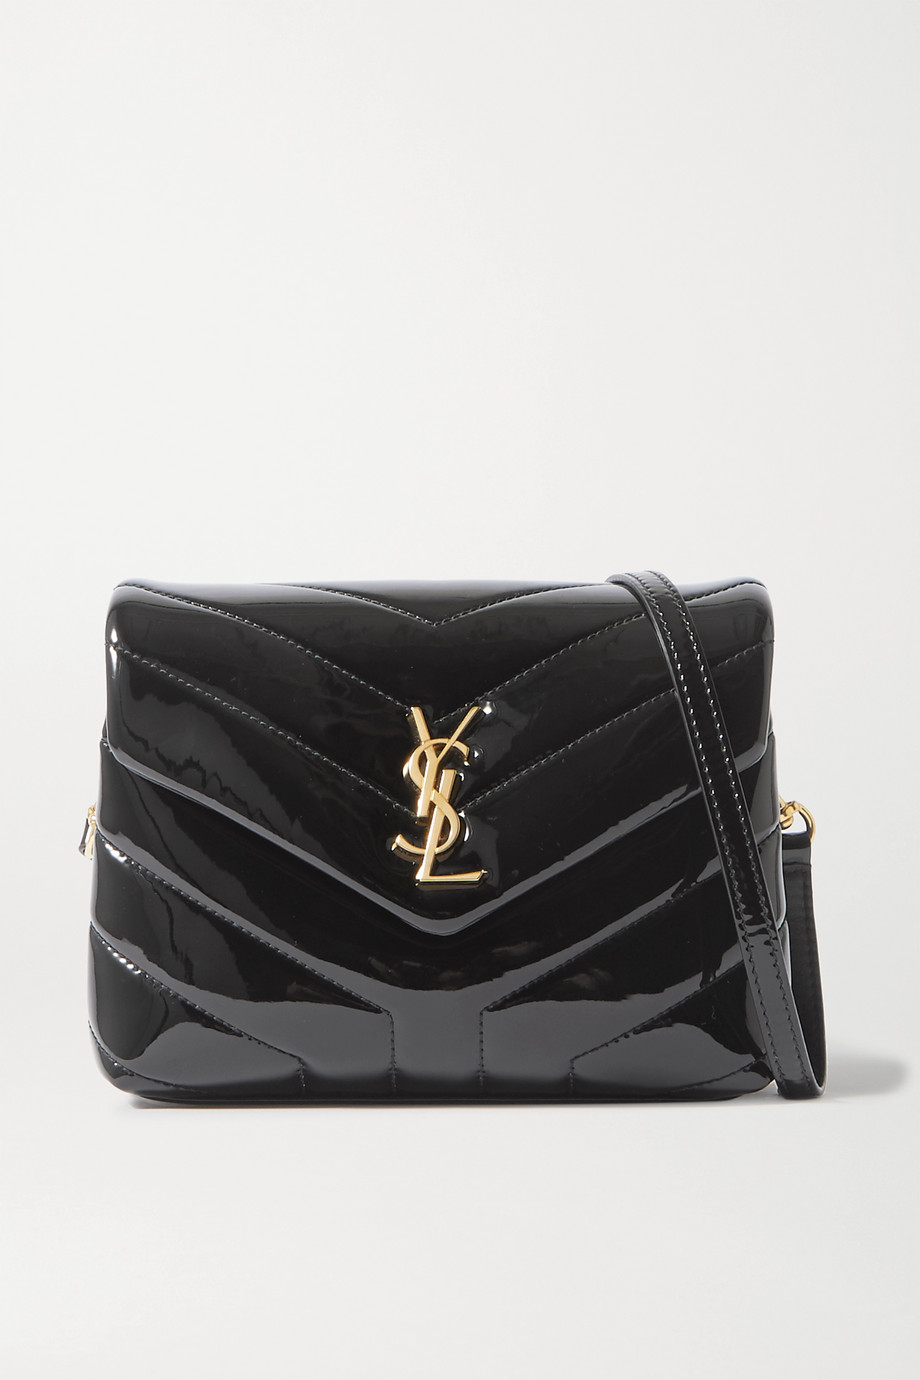 SAINT LAURENT Loulou Toy mini quilted patent-leather shoulder bag